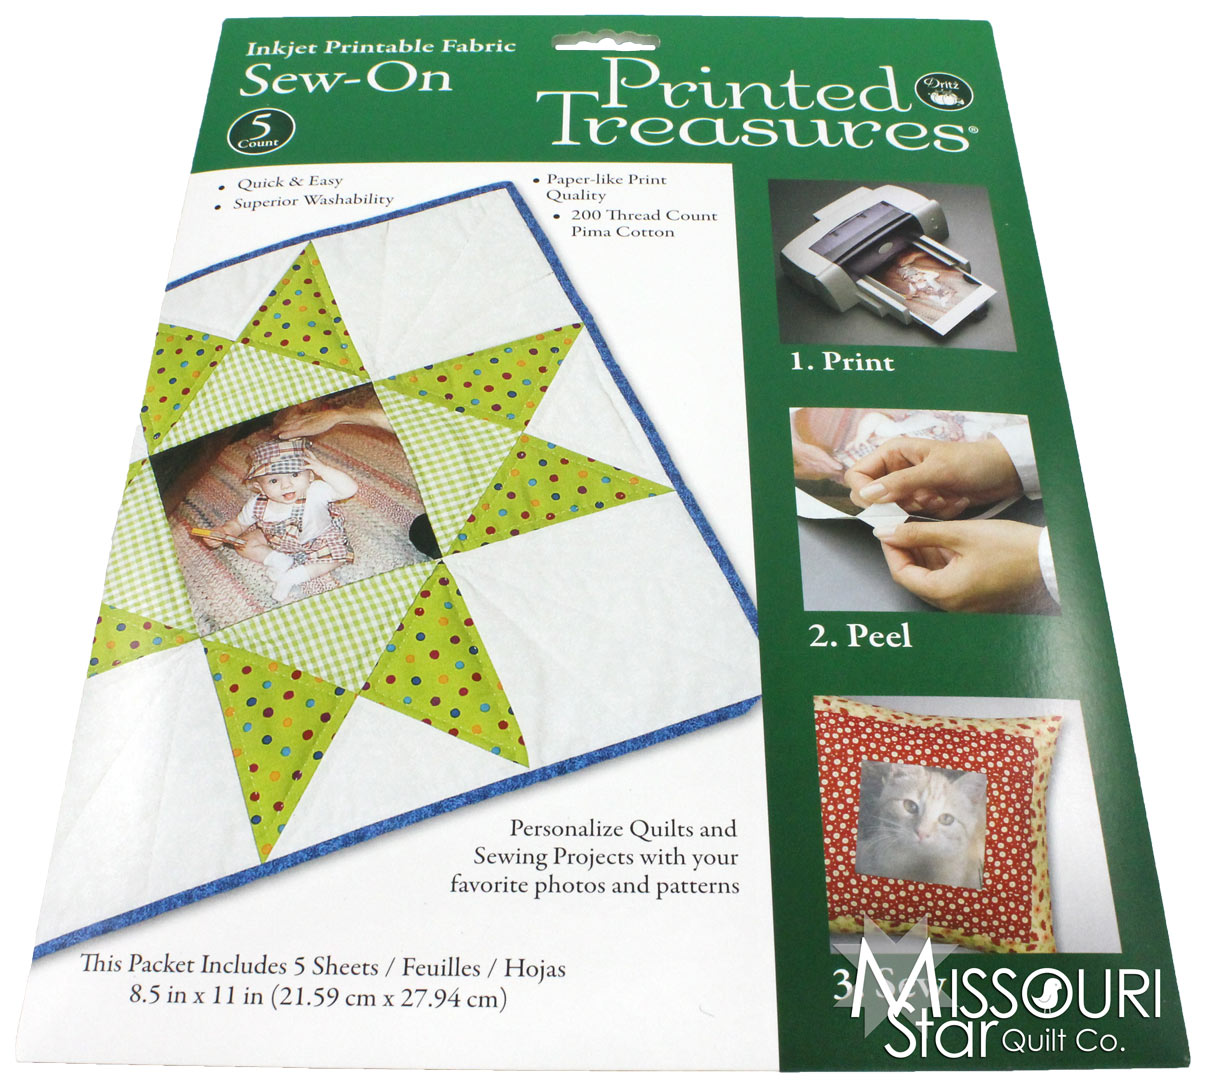 graphic about Printable Fabric Sheets for Quilting named Published Treasures Printer Cloth Sheets White - Dritz - Dritz